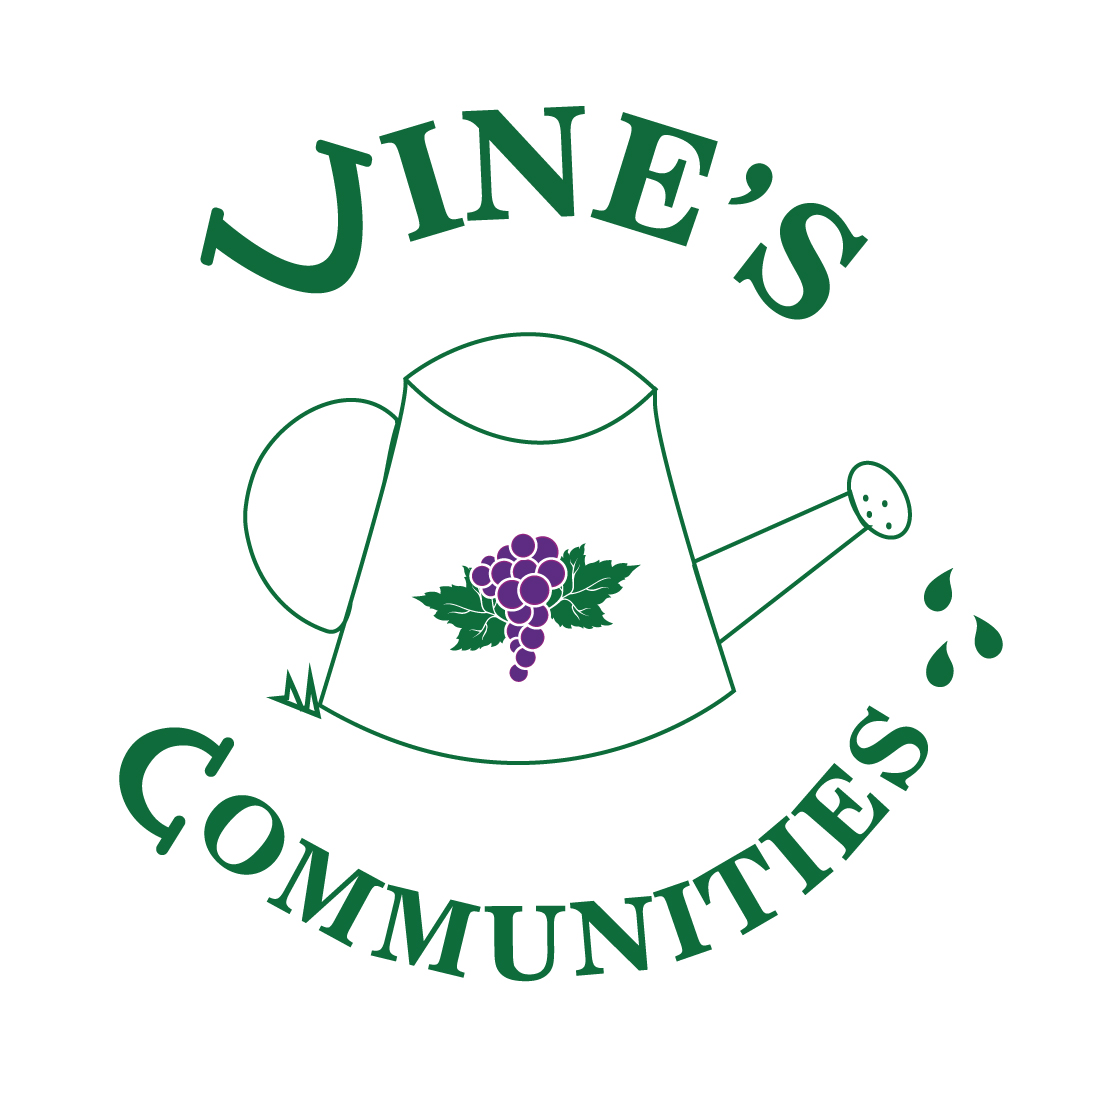 Vines Communities